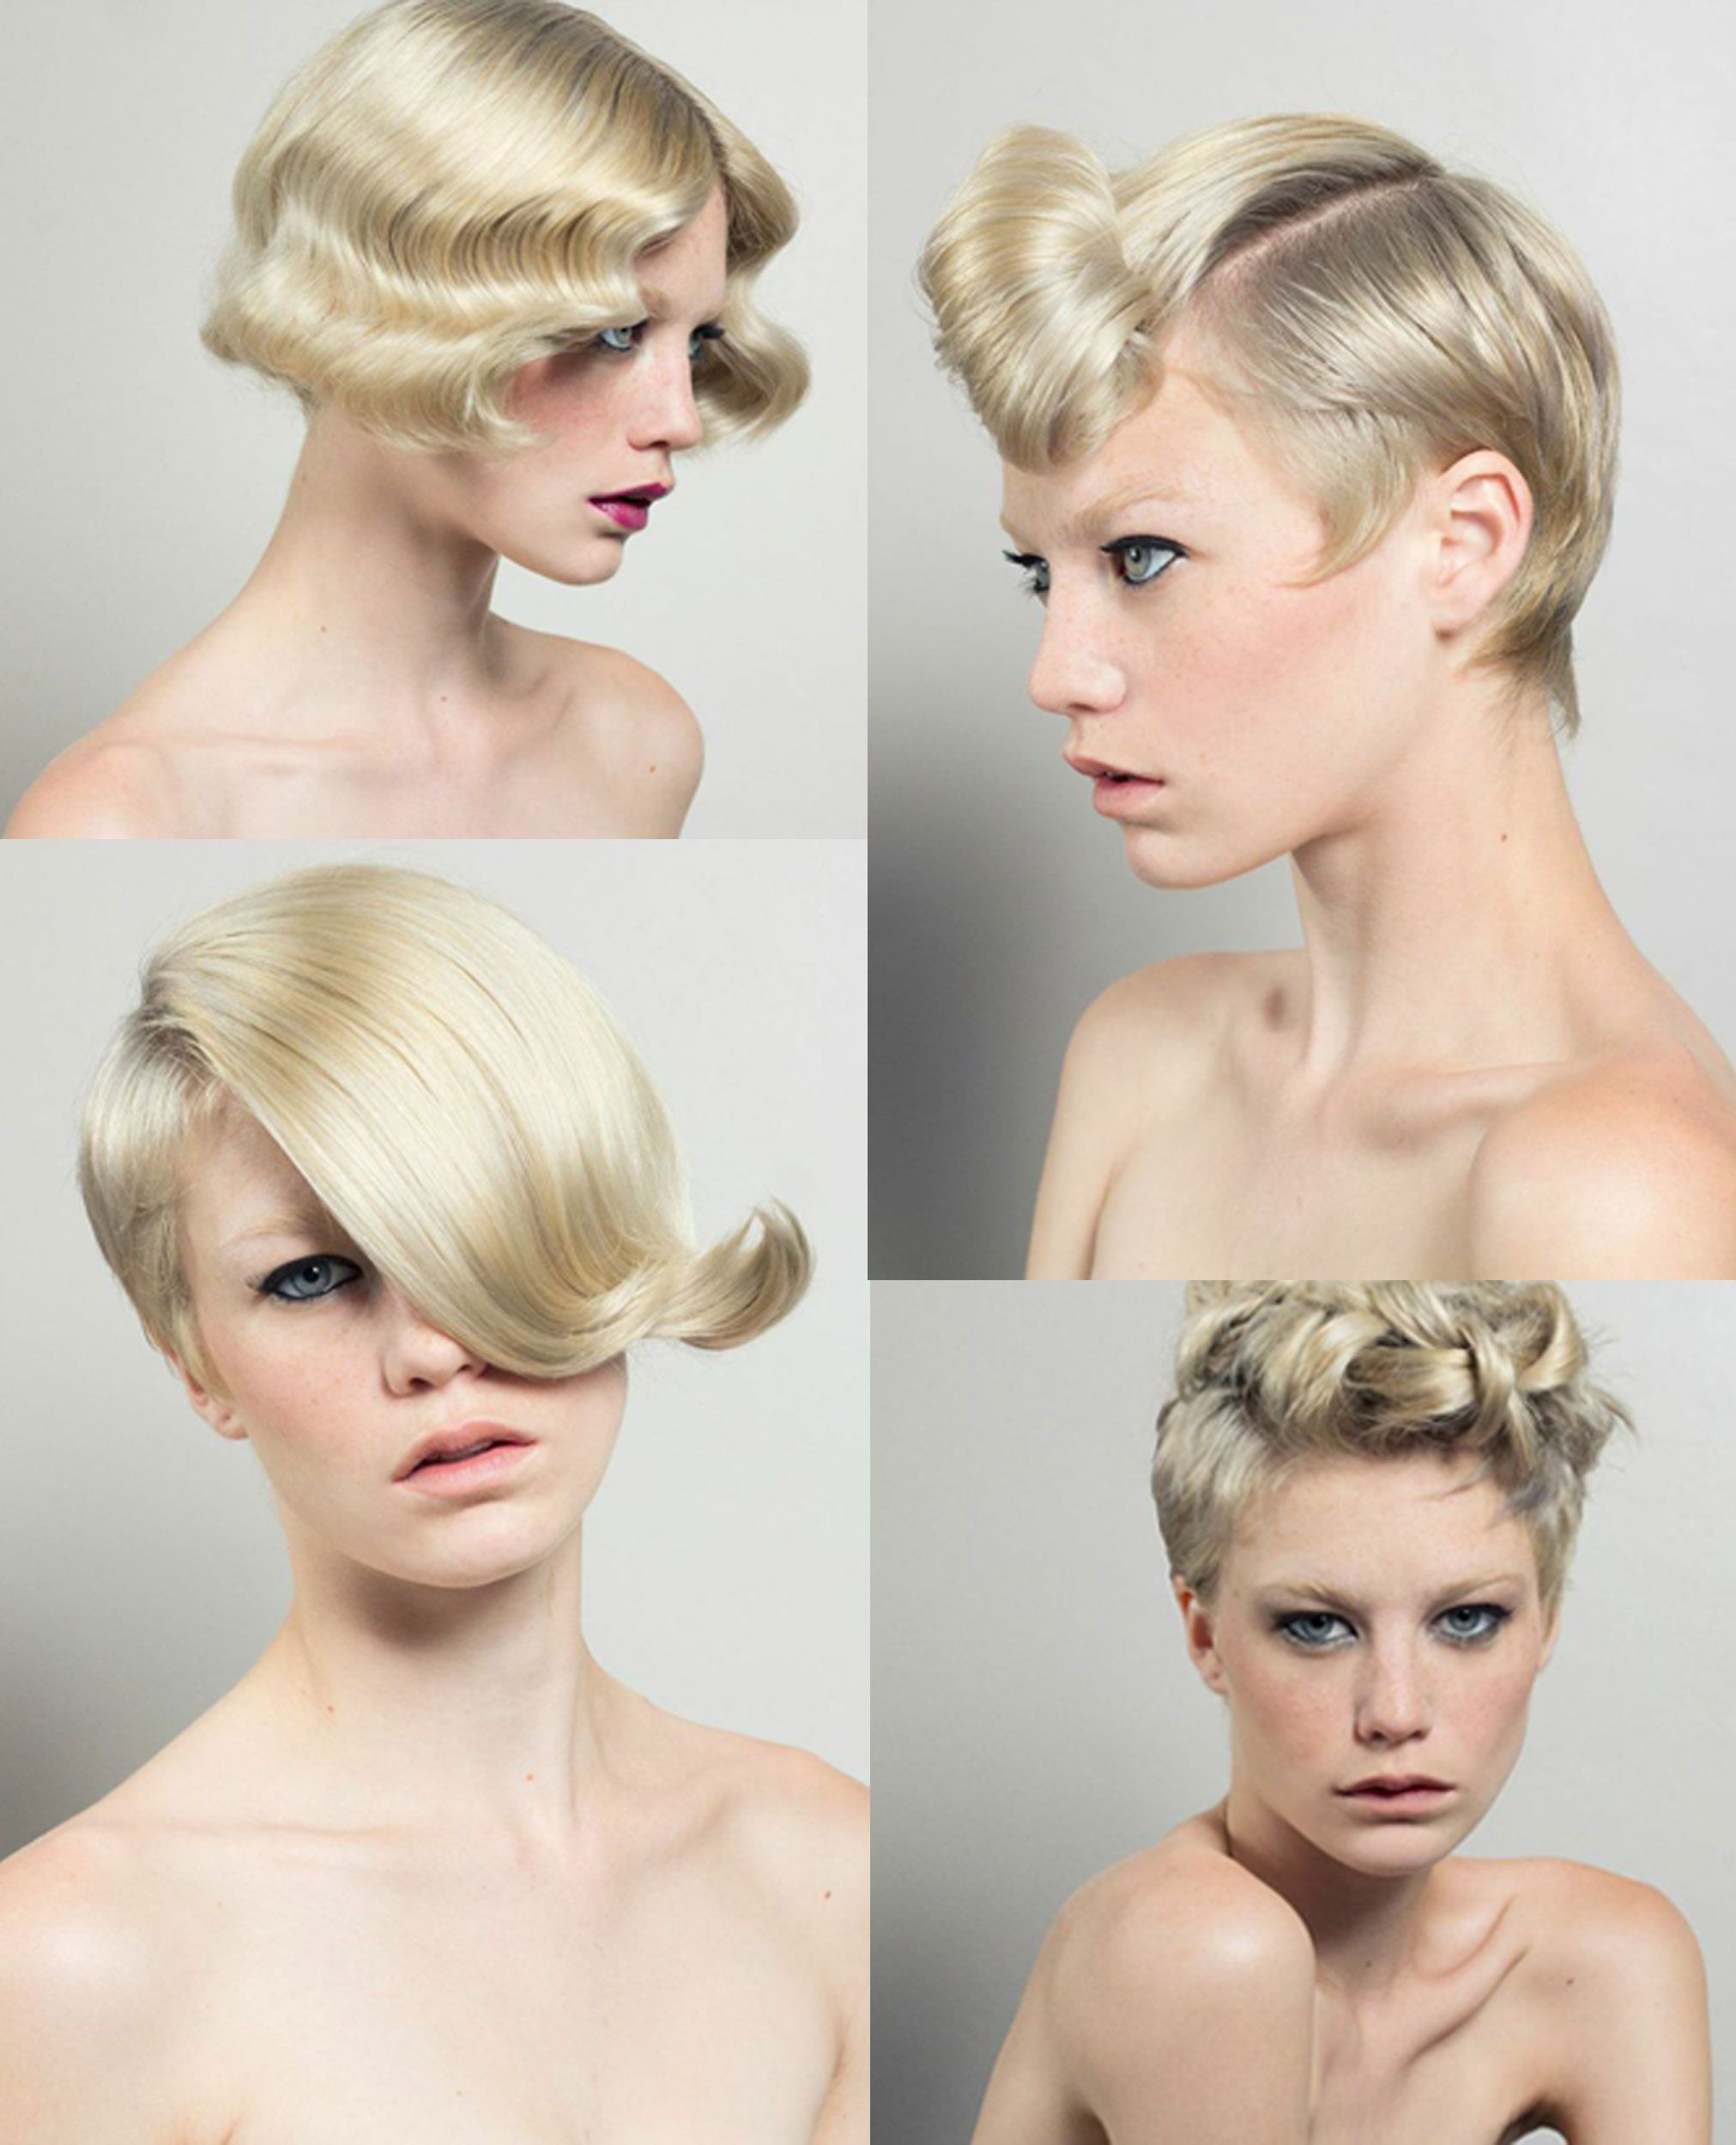 Dressing Up the Undercut - Hairstyling & Updos | Undercut, Updos and ...